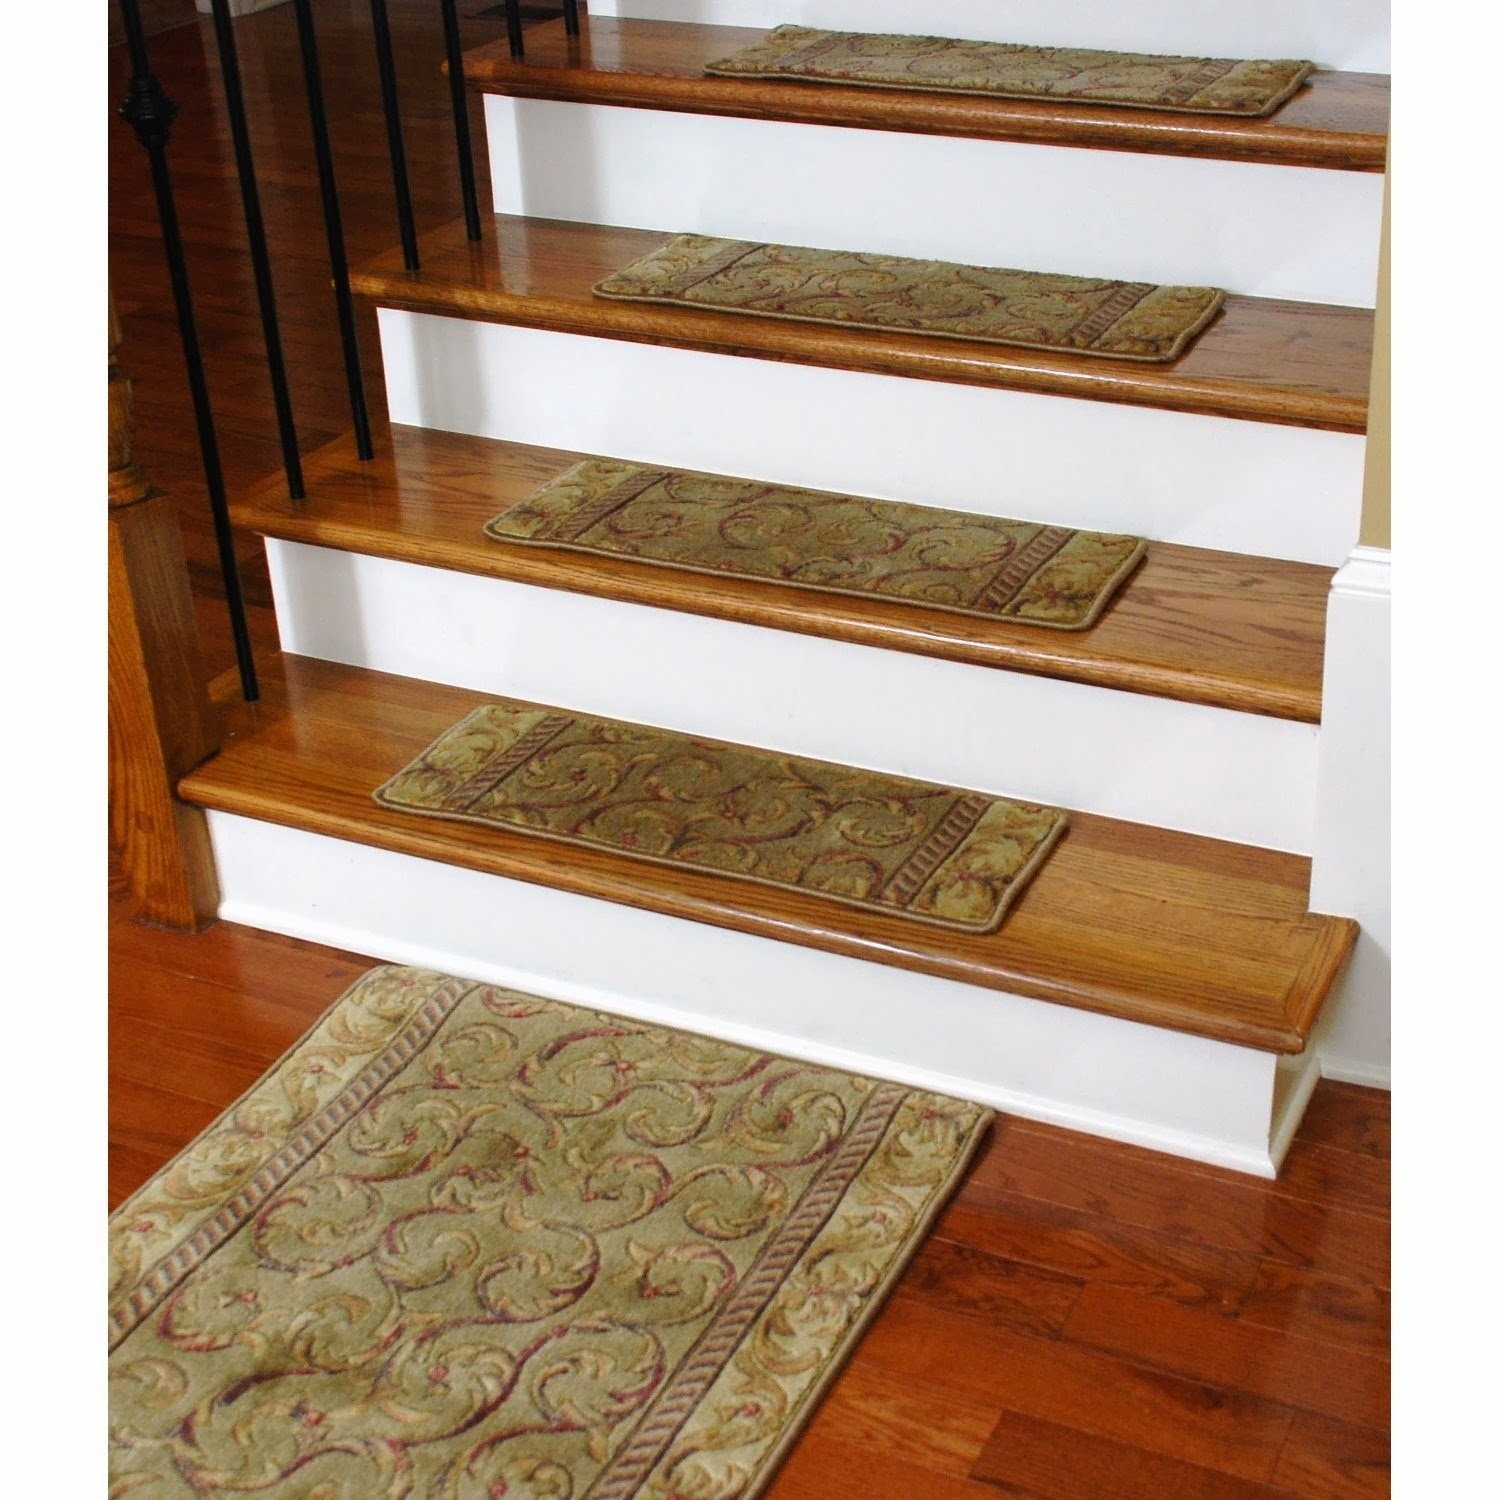 Stair Treads Carpet Stair Treads Carpet Carpets Collection Inside Carpet Stair Pads (Image 14 of 15)